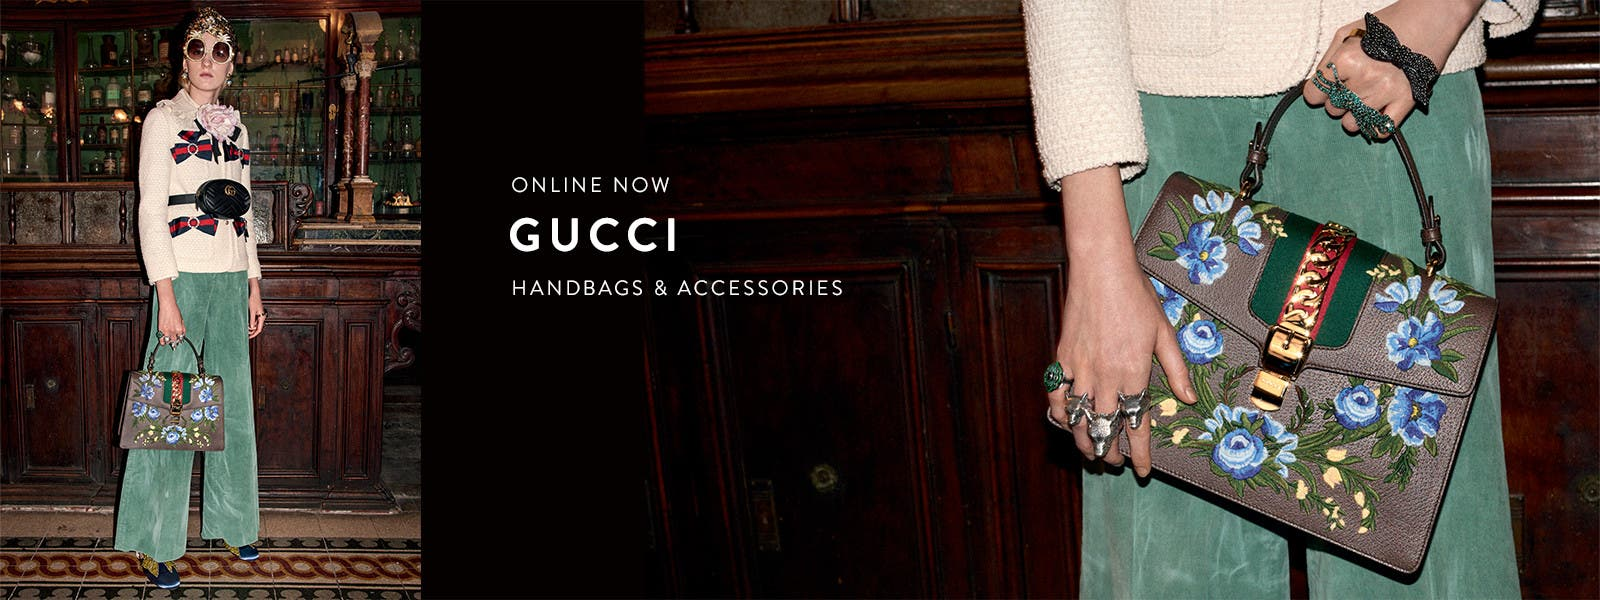 Online now: shop Gucci handbags, jewelry, watches, scarves and belts.